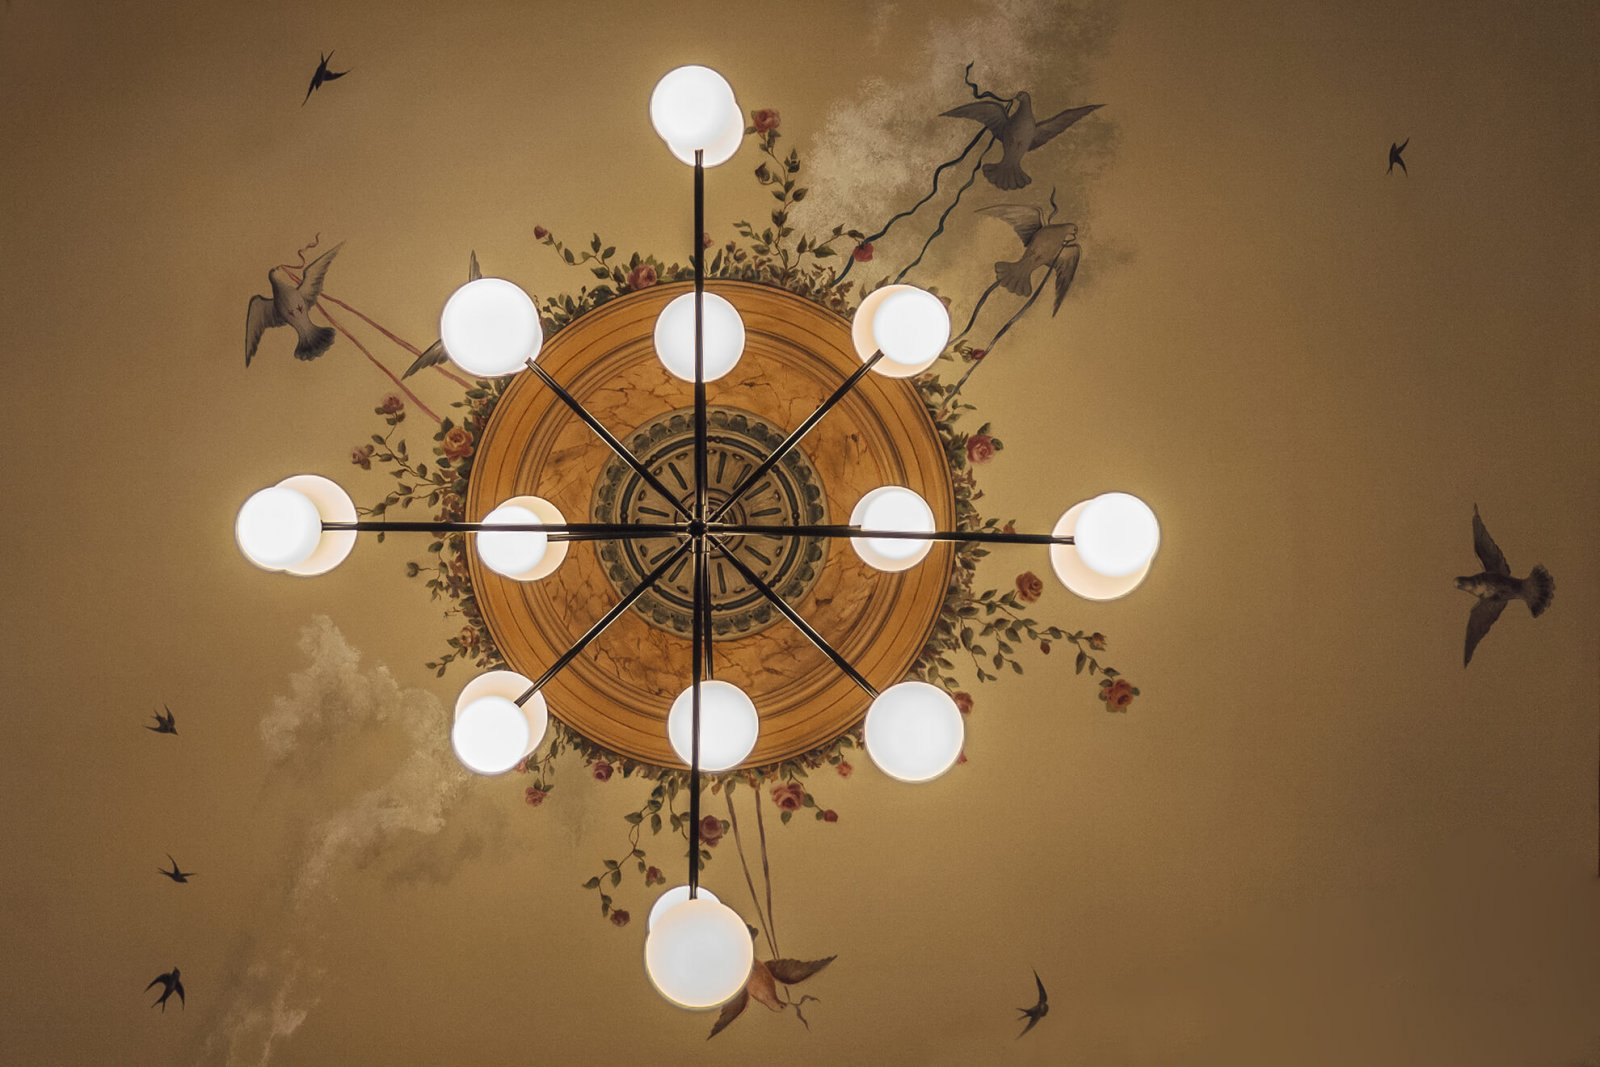 Detail of the ceiling painting with flowers and birds and a modern round bulb lamp